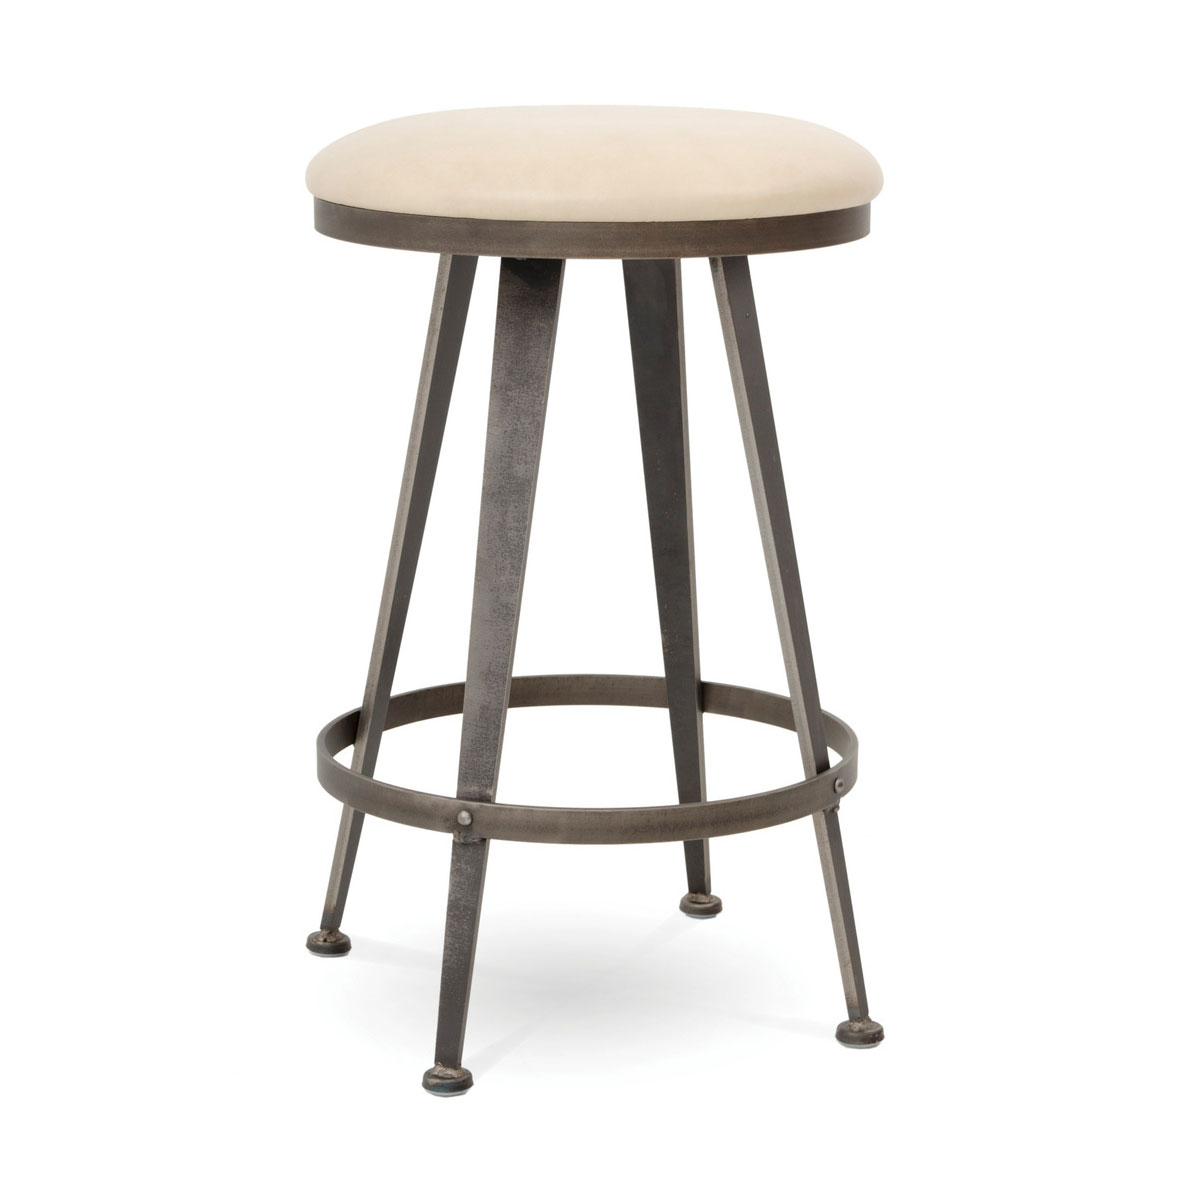 Astonishing Charleston Forge Aries Backless Swivel Barstool Ohio Caraccident5 Cool Chair Designs And Ideas Caraccident5Info